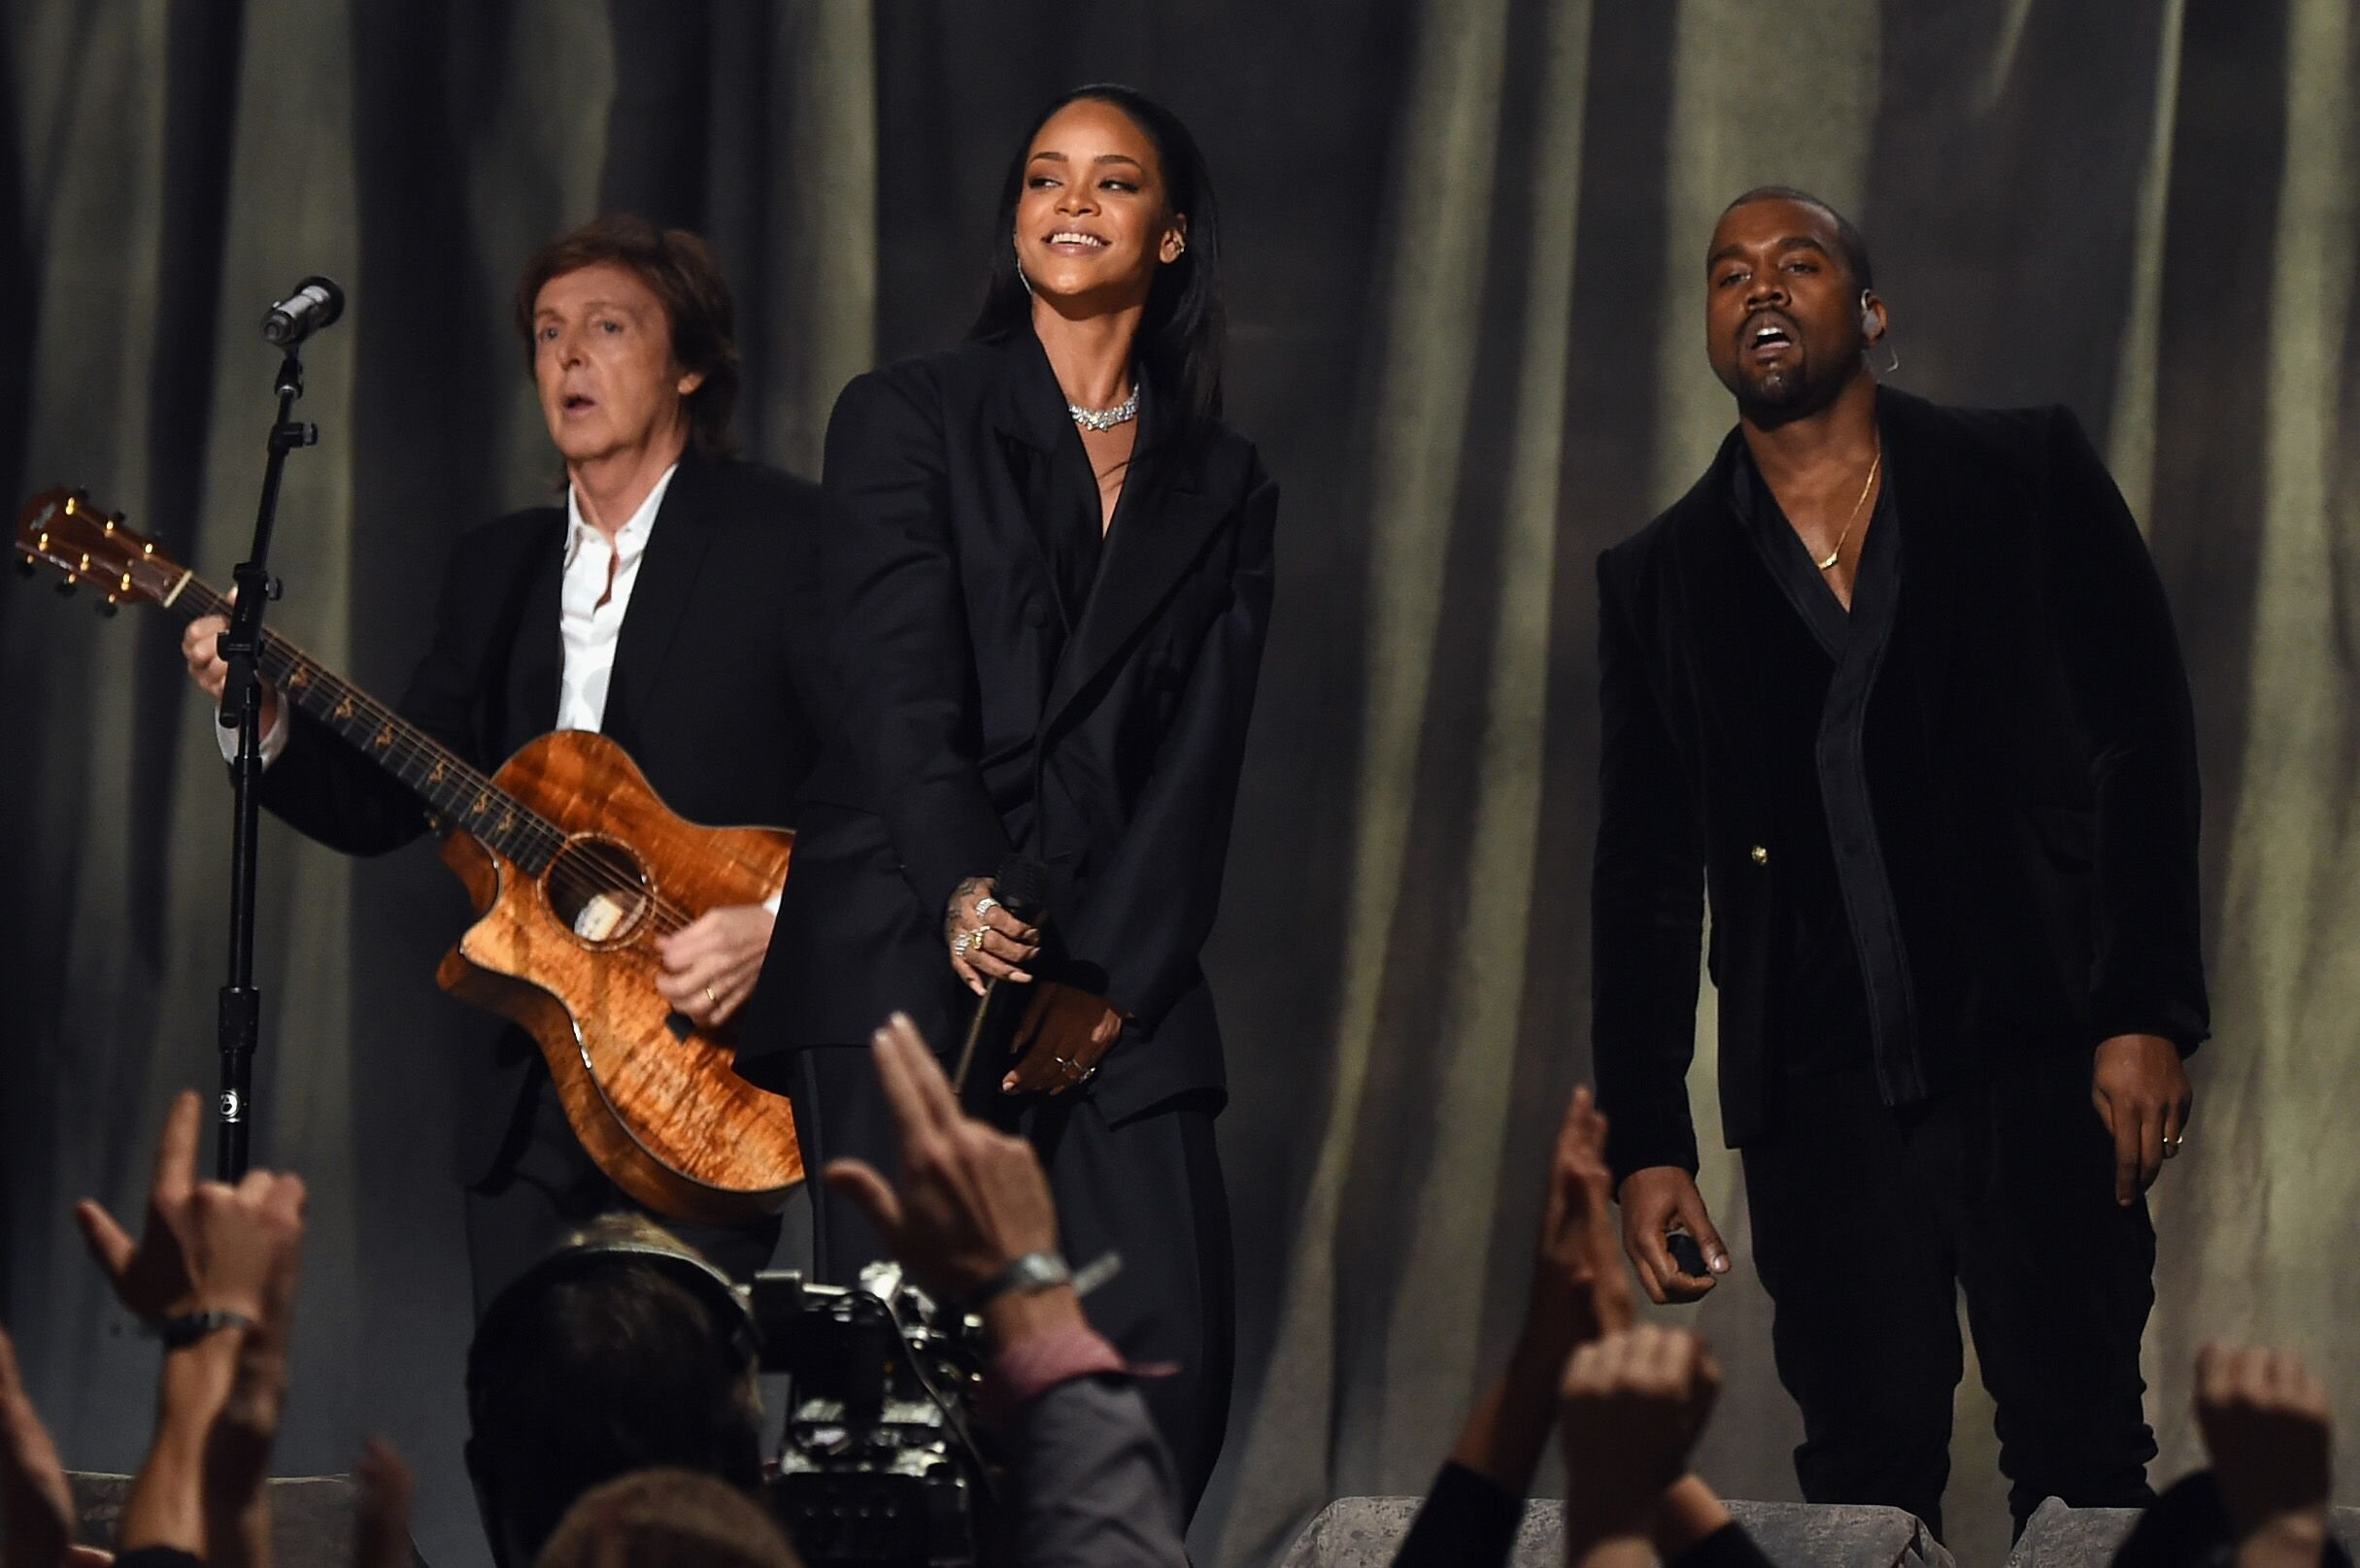 Rihanna performing with Sir Paul McCarthney and Kanye West in 2015/ Source: Getty Image